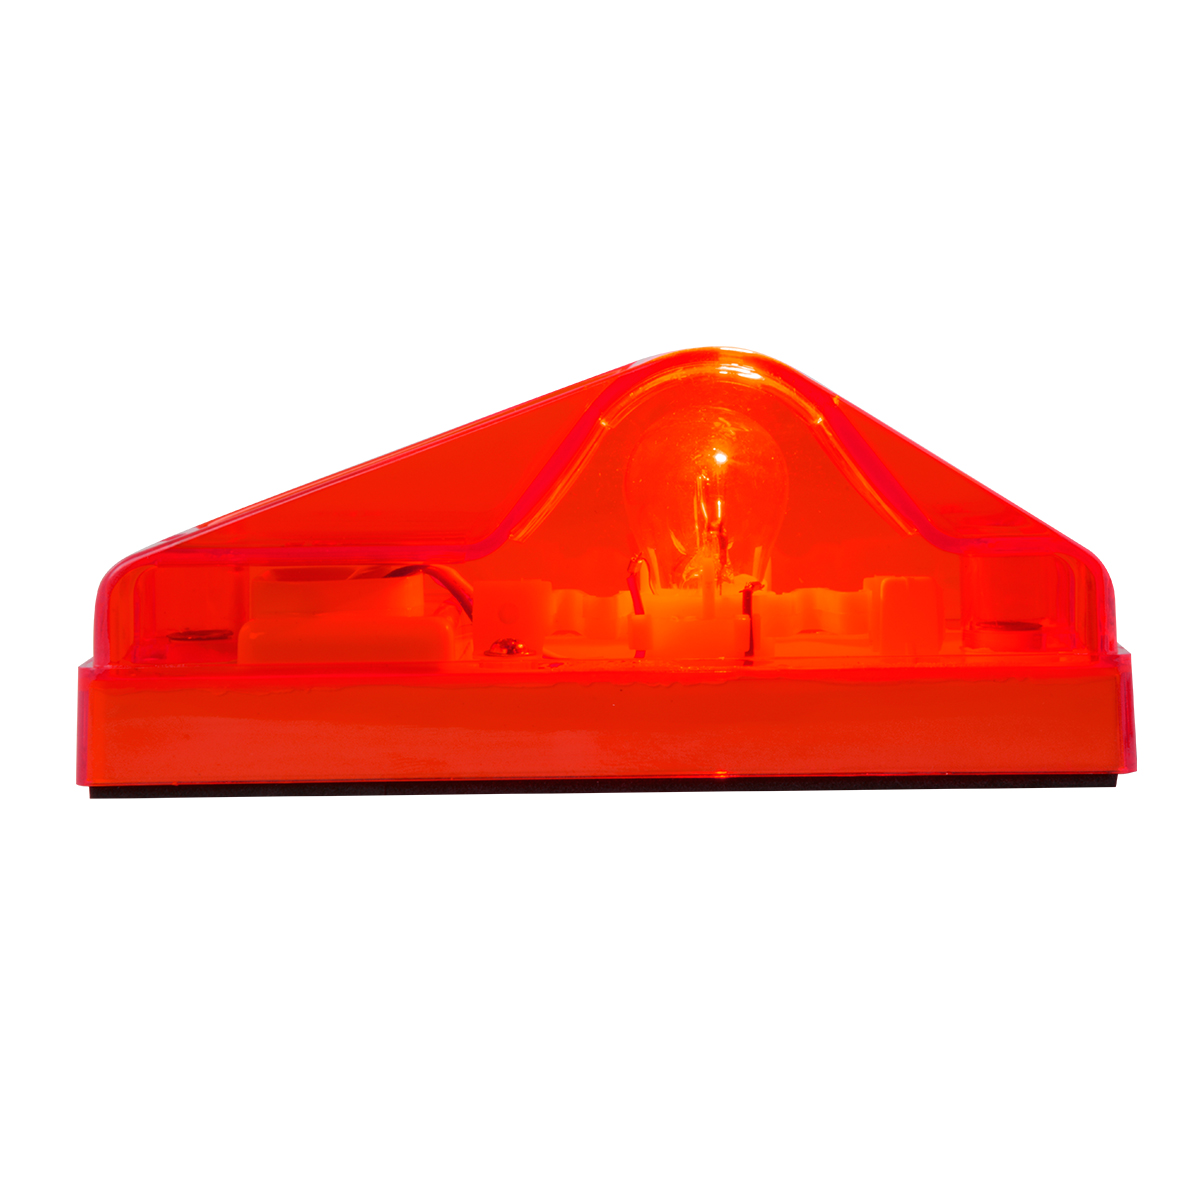 #87013 Side Mount Turn and Marker Red Light Only - Side View